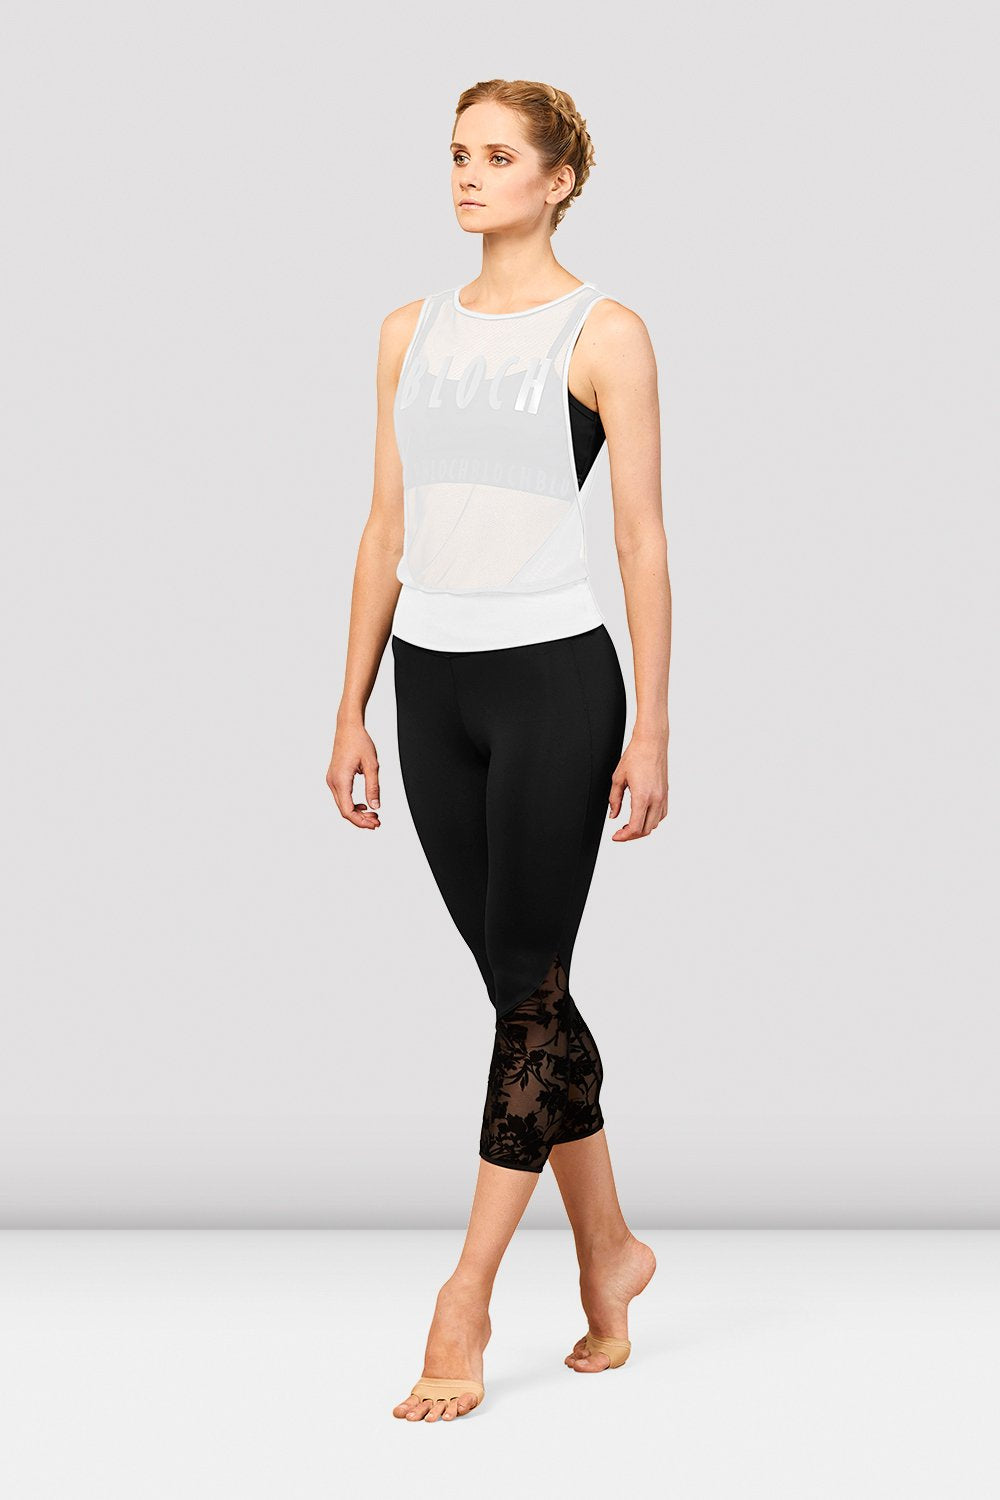 Ladies Bloch Sheer Mesh Top - BLOCH US